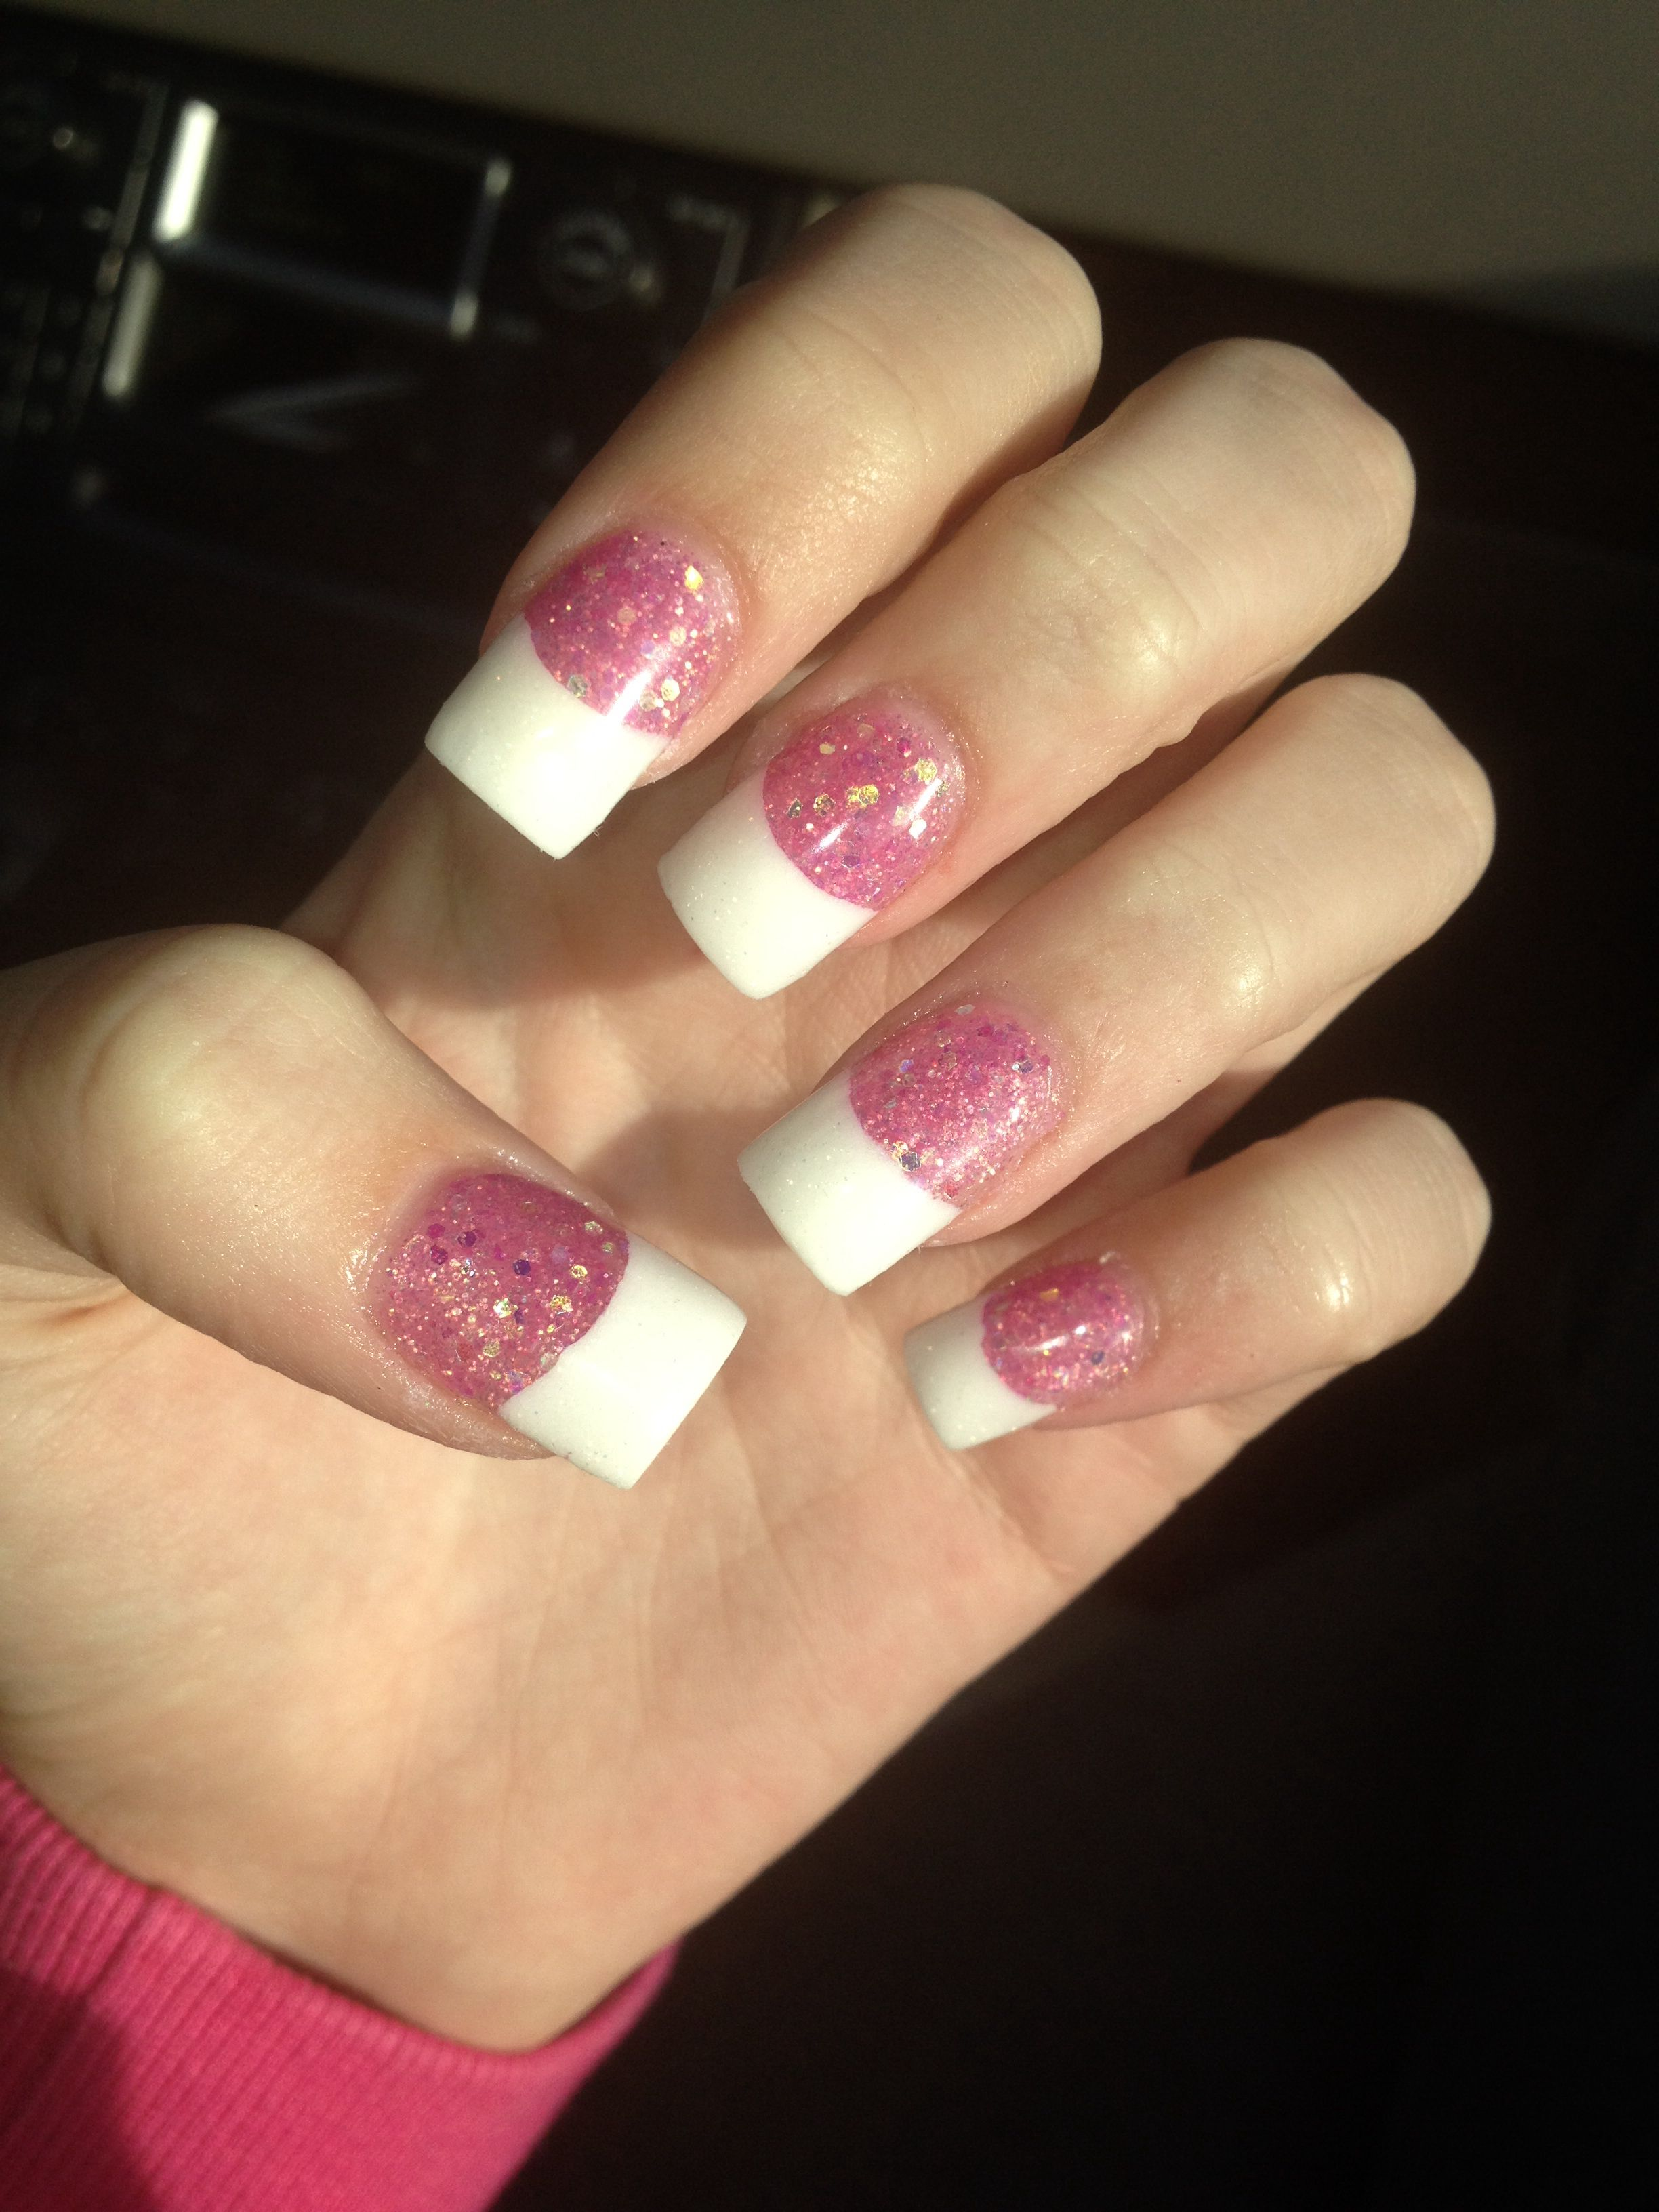 acrylic nails, glitter, pink, french tip | my nails | pinterest